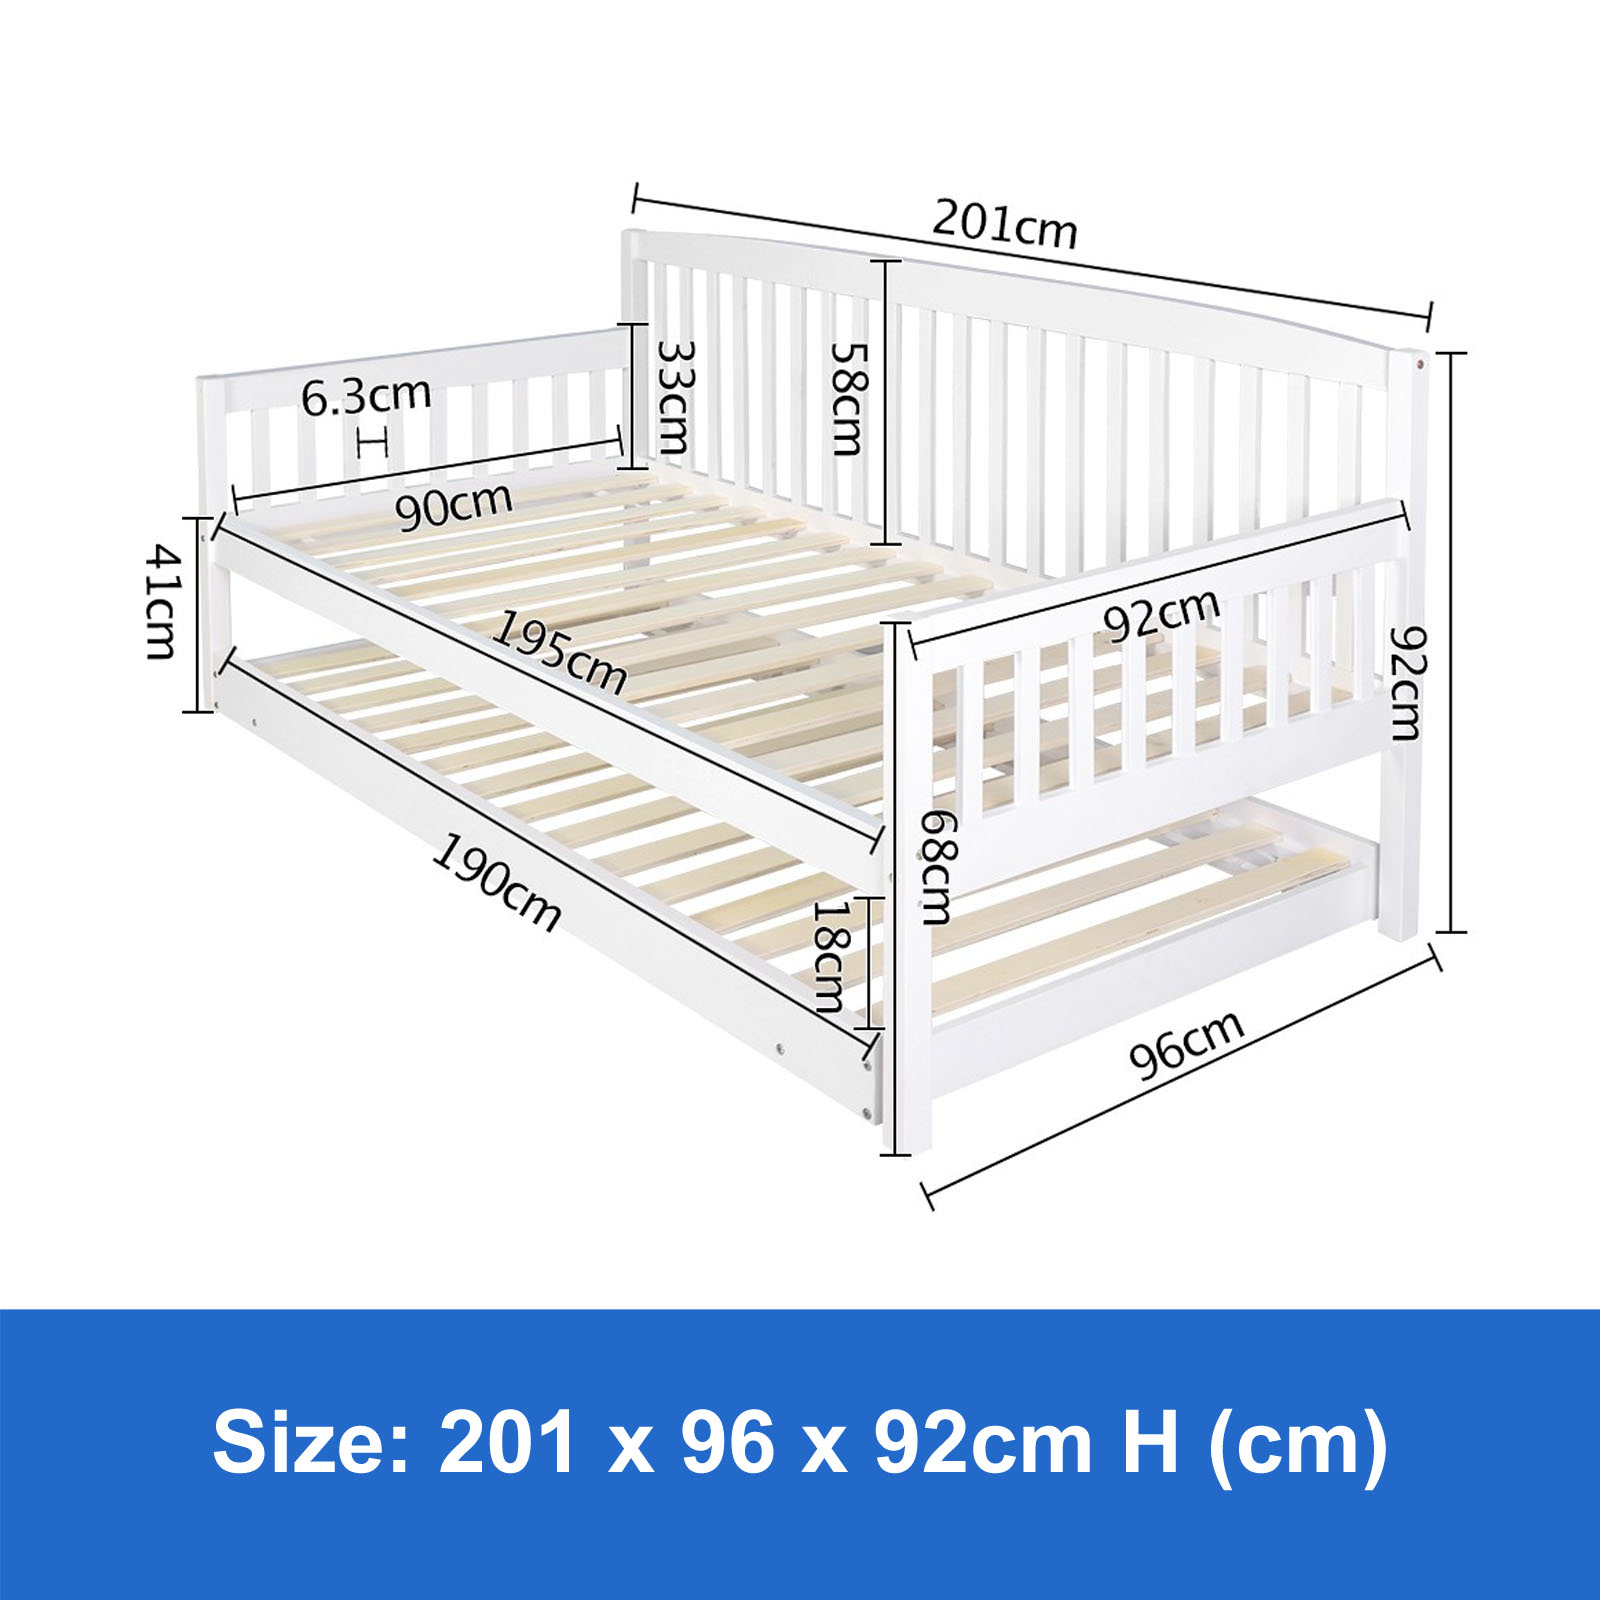 sofa bed timber slats shaker table unfinished new wooden frame white trundle daybed teenager